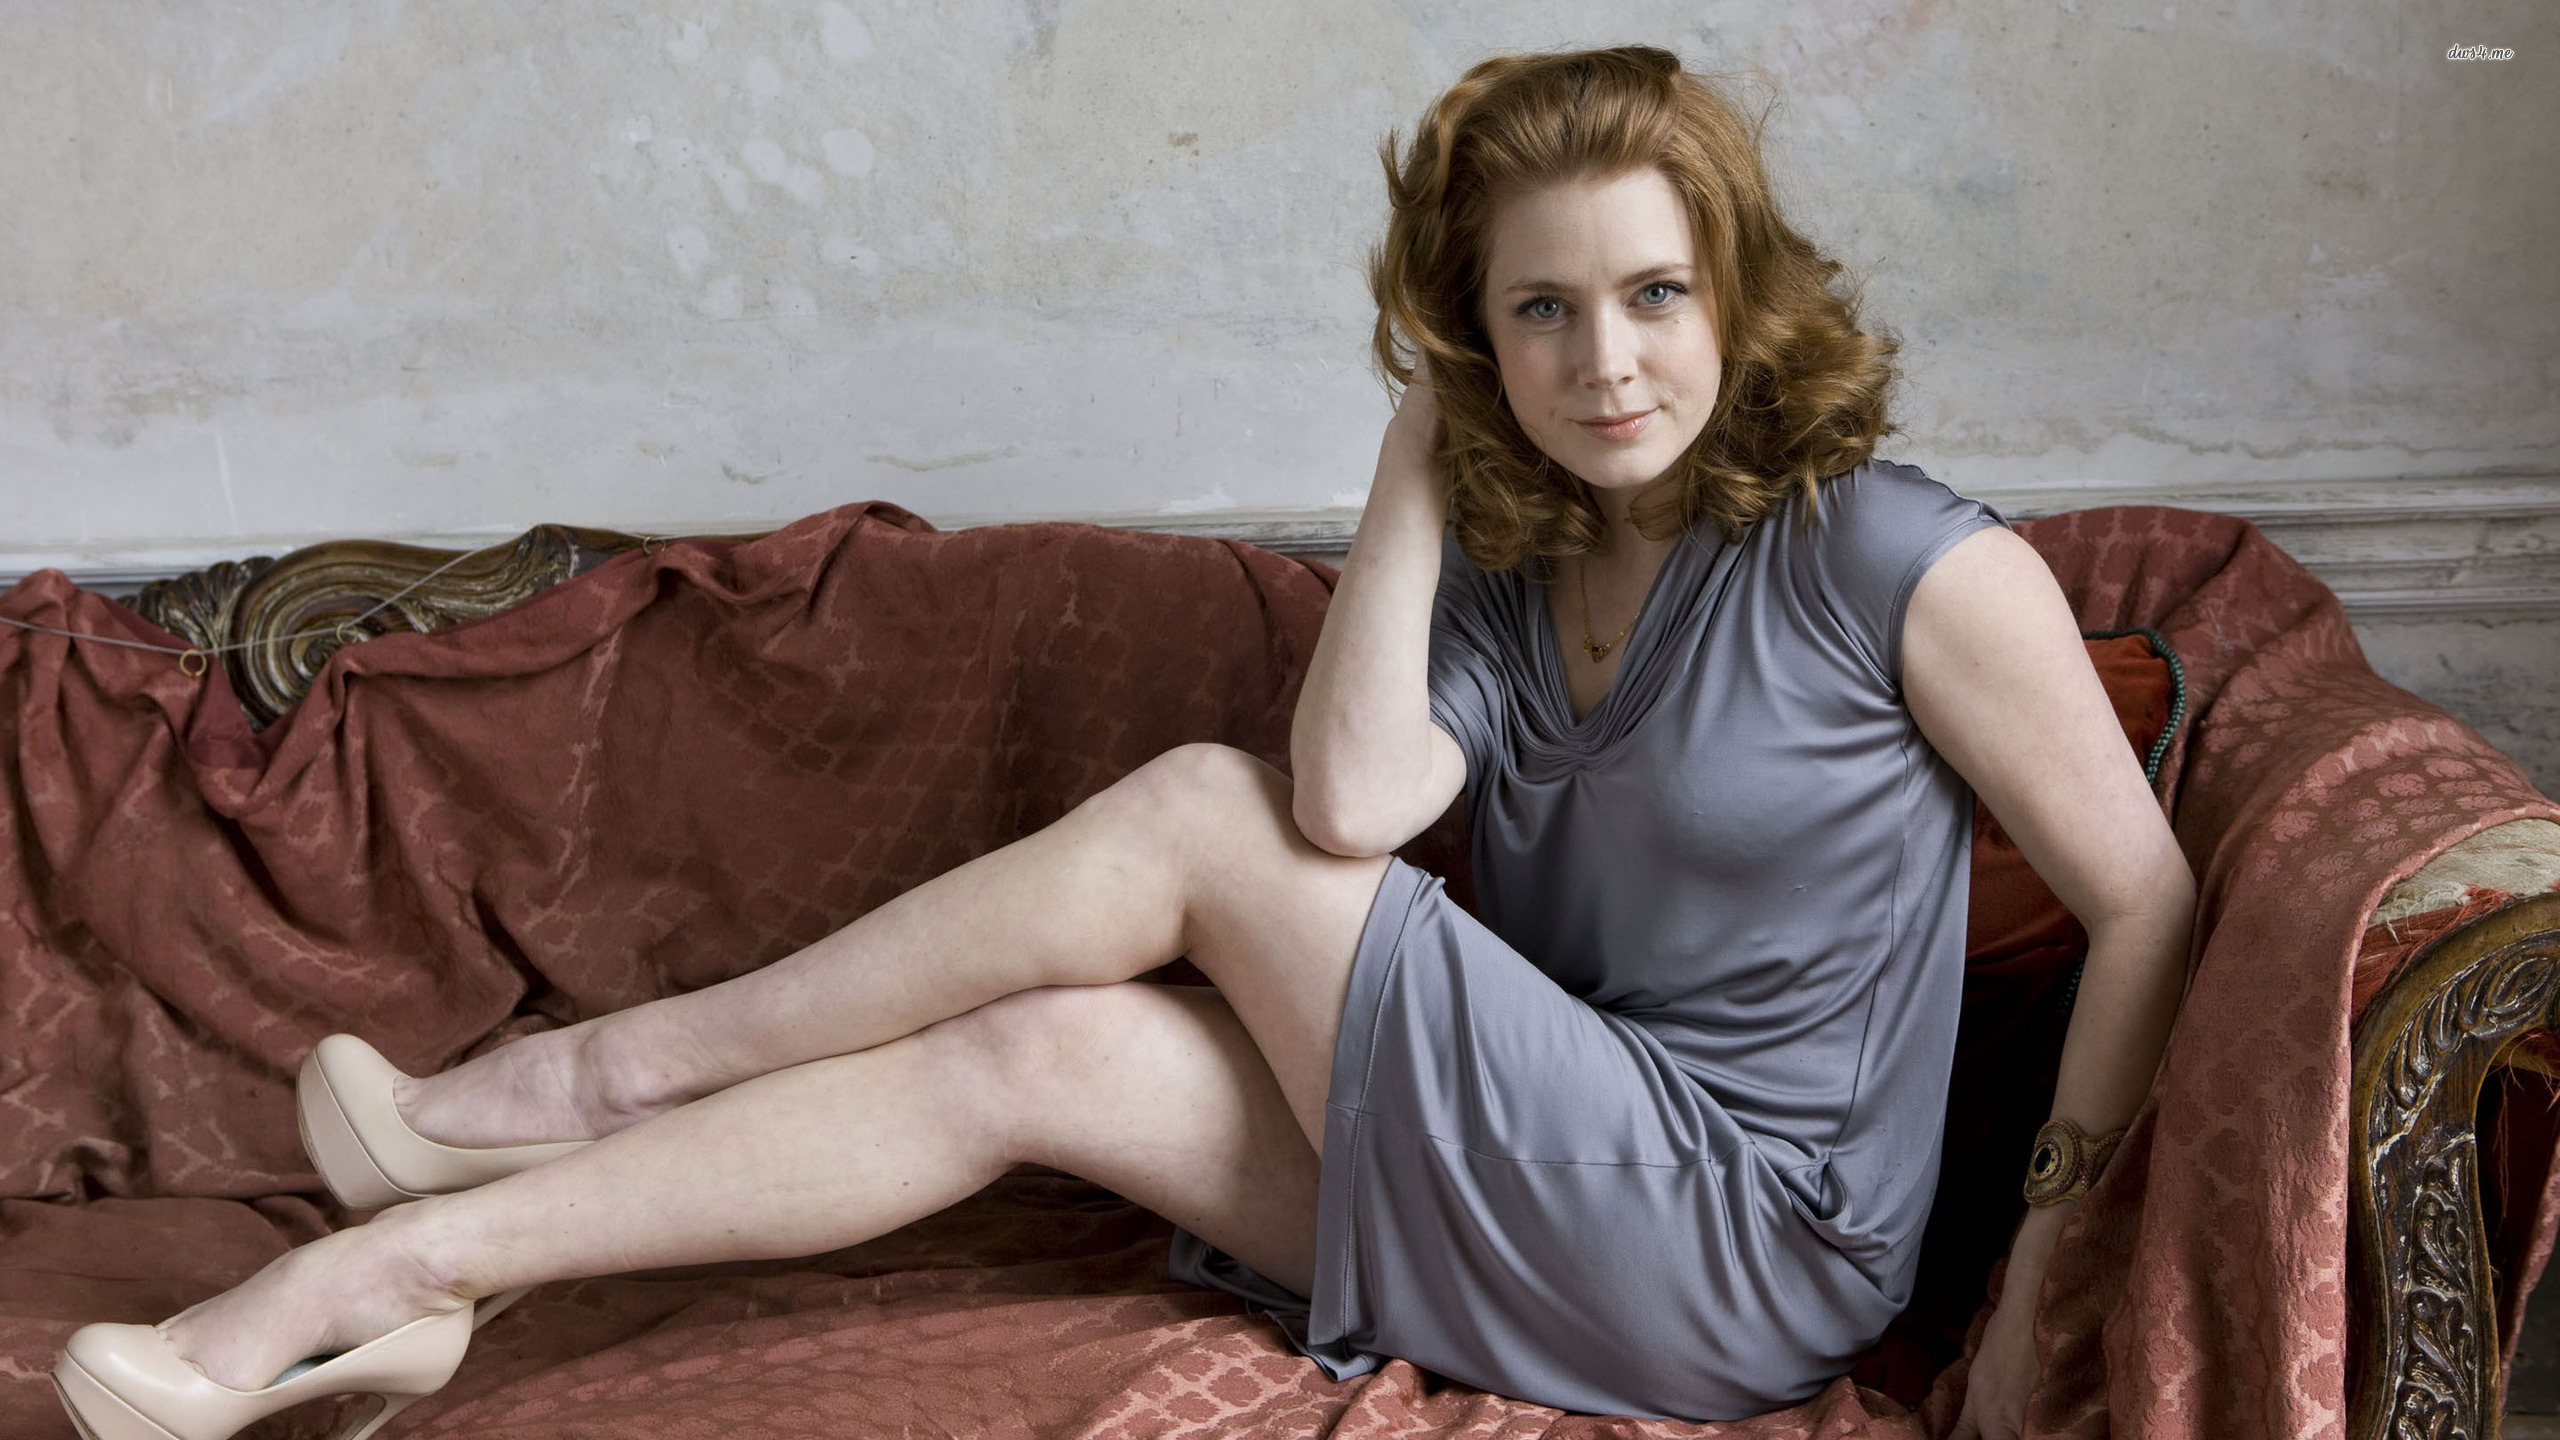 amy adams wallpapers images photos pictures backgrounds. Black Bedroom Furniture Sets. Home Design Ideas